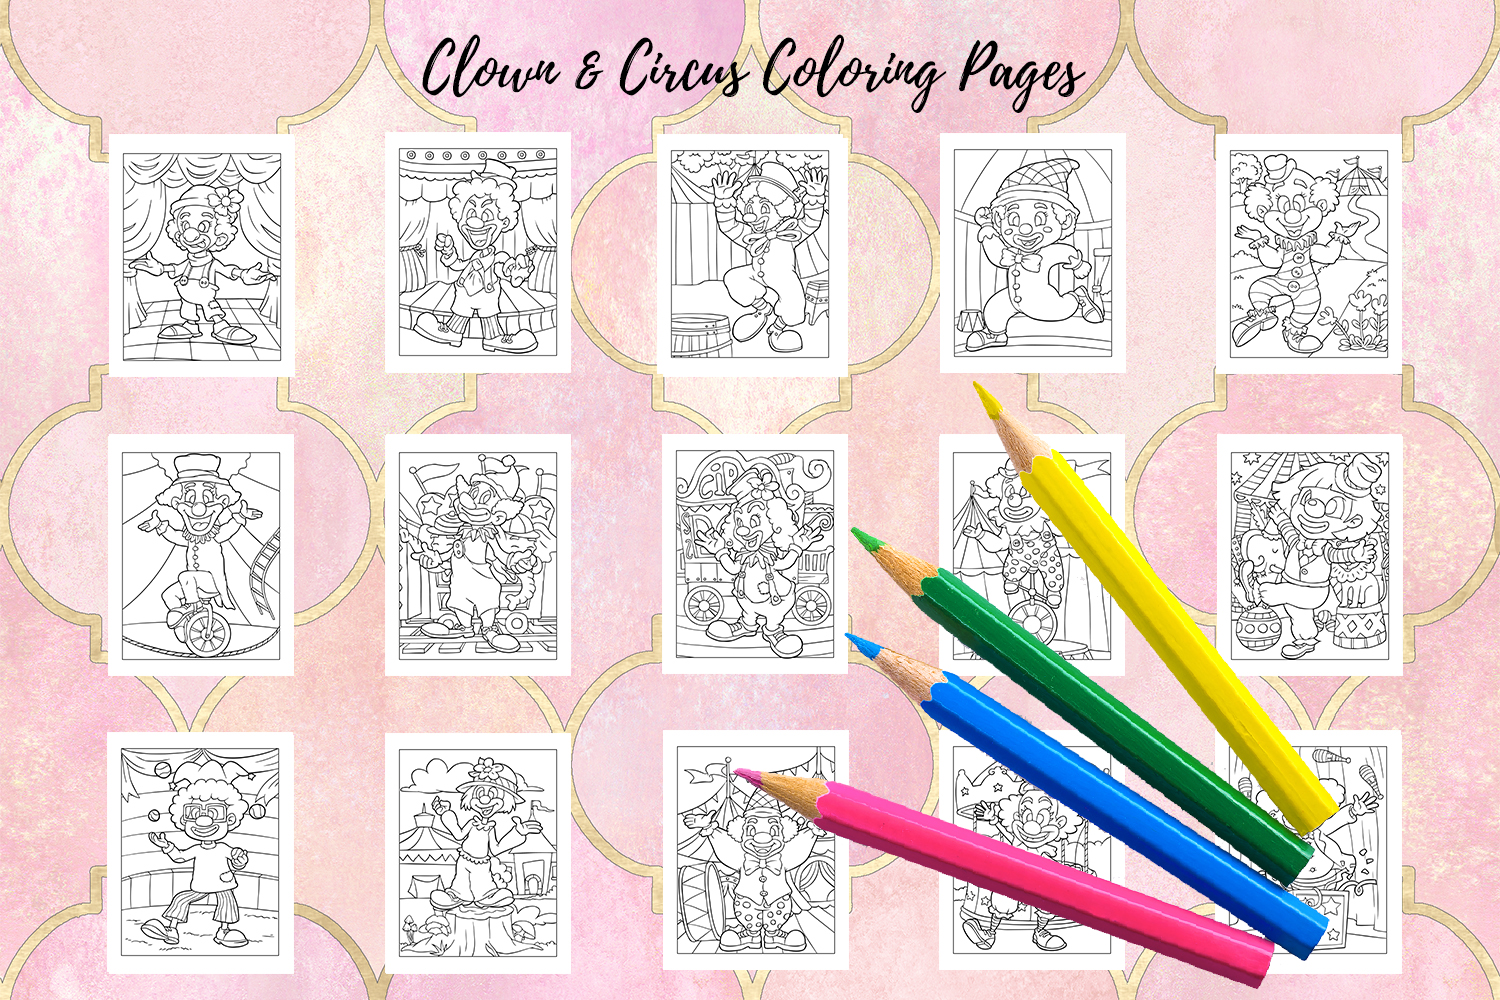 Coloring Pages For Kids - 15 Clown and Circus Coloring Pages example image 2